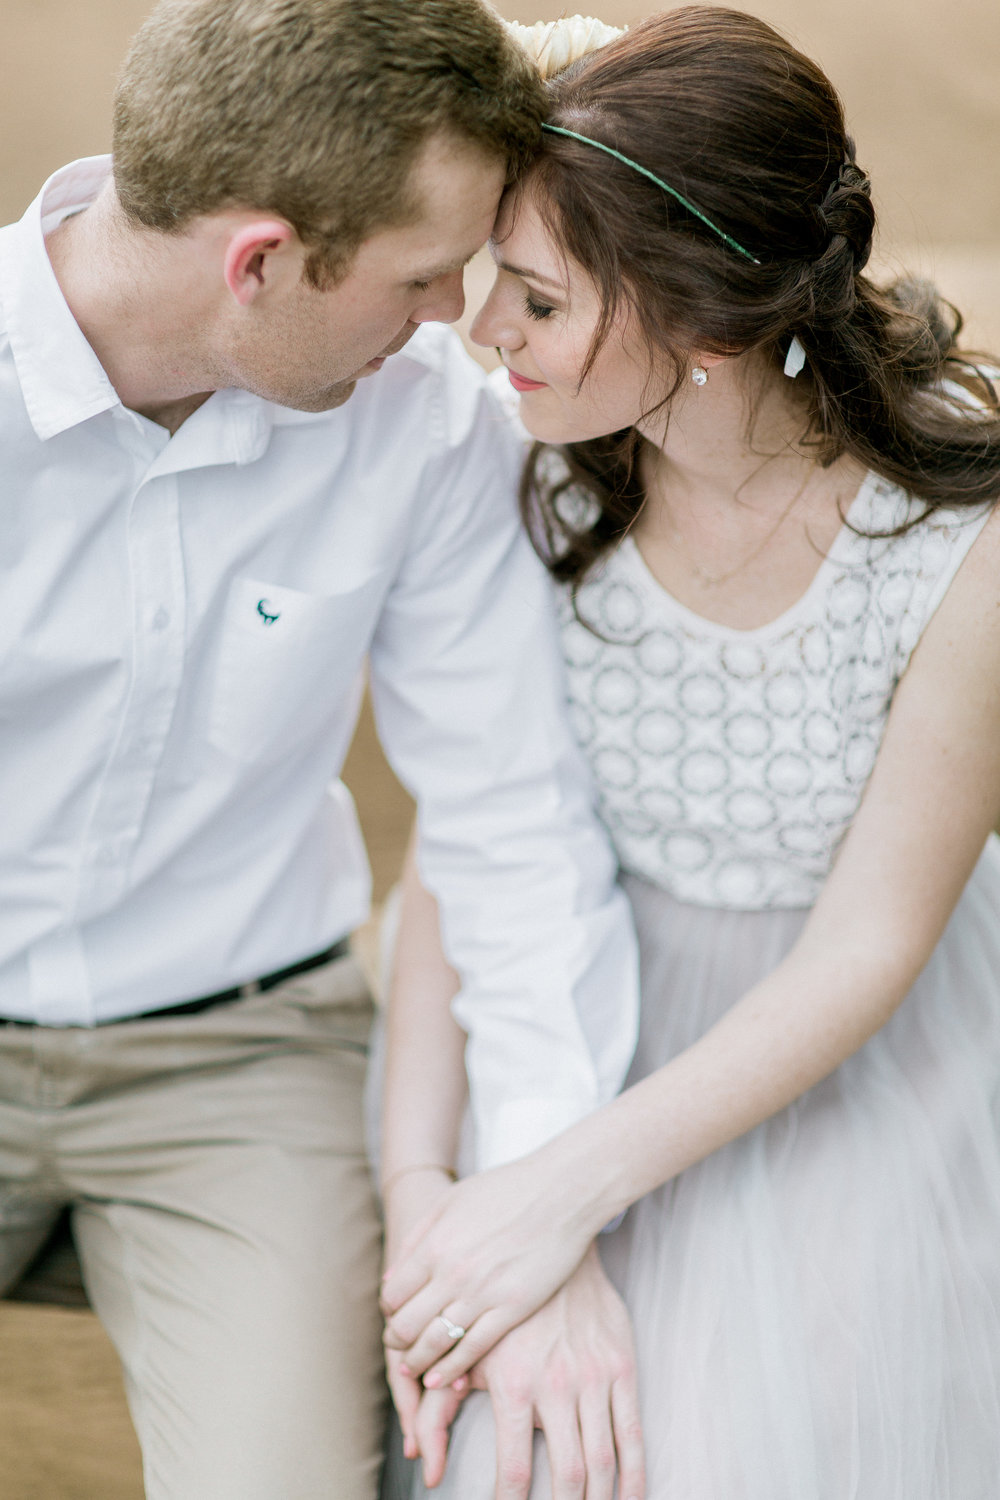 South africa wedding photographer clareece smit photography17.jpg